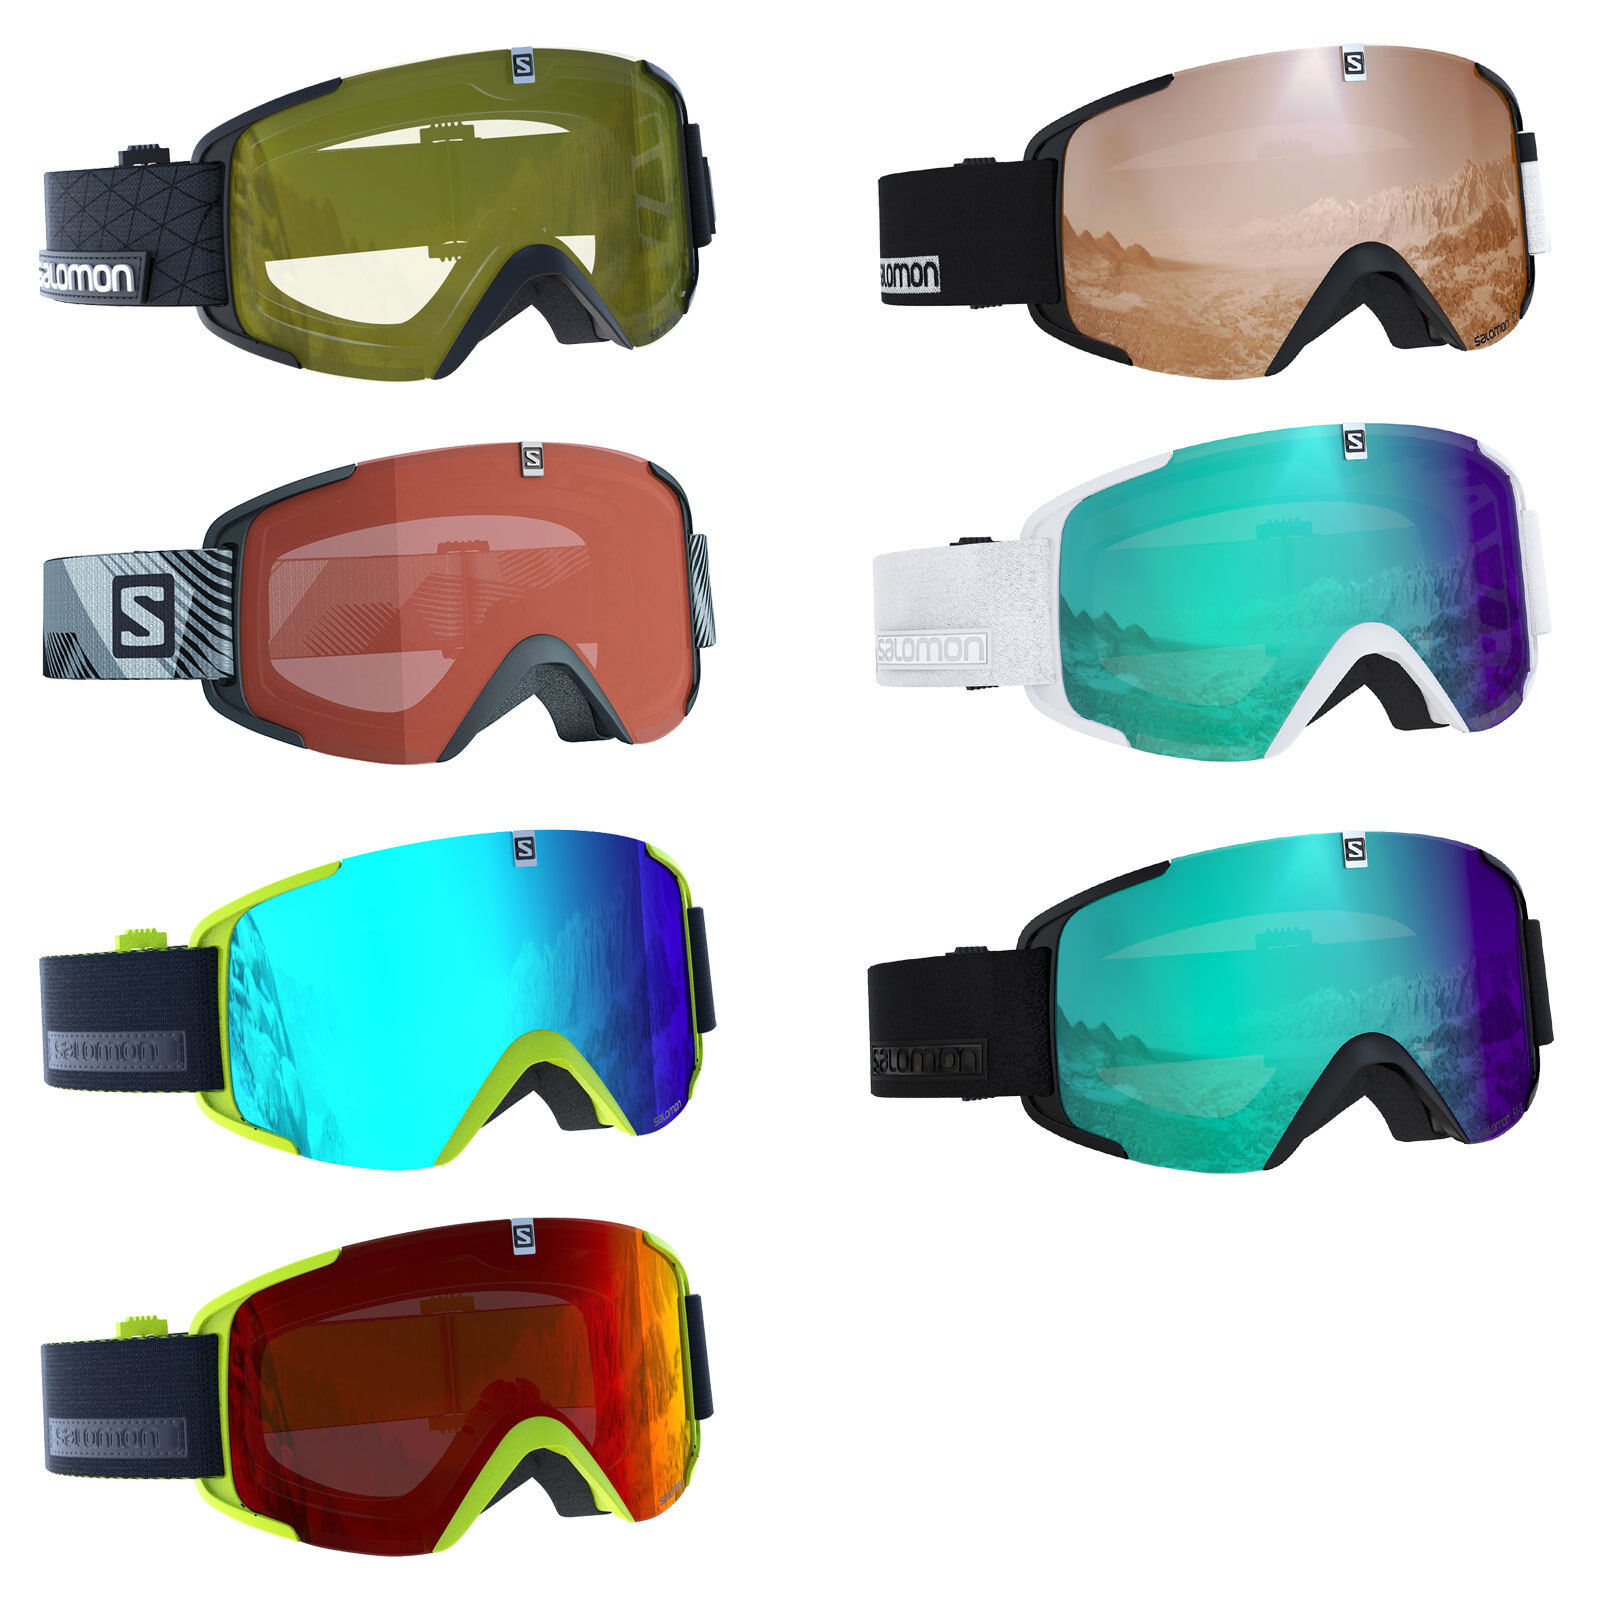 Salomon Xview x Ski Goggles Snowboard Snow Glasses